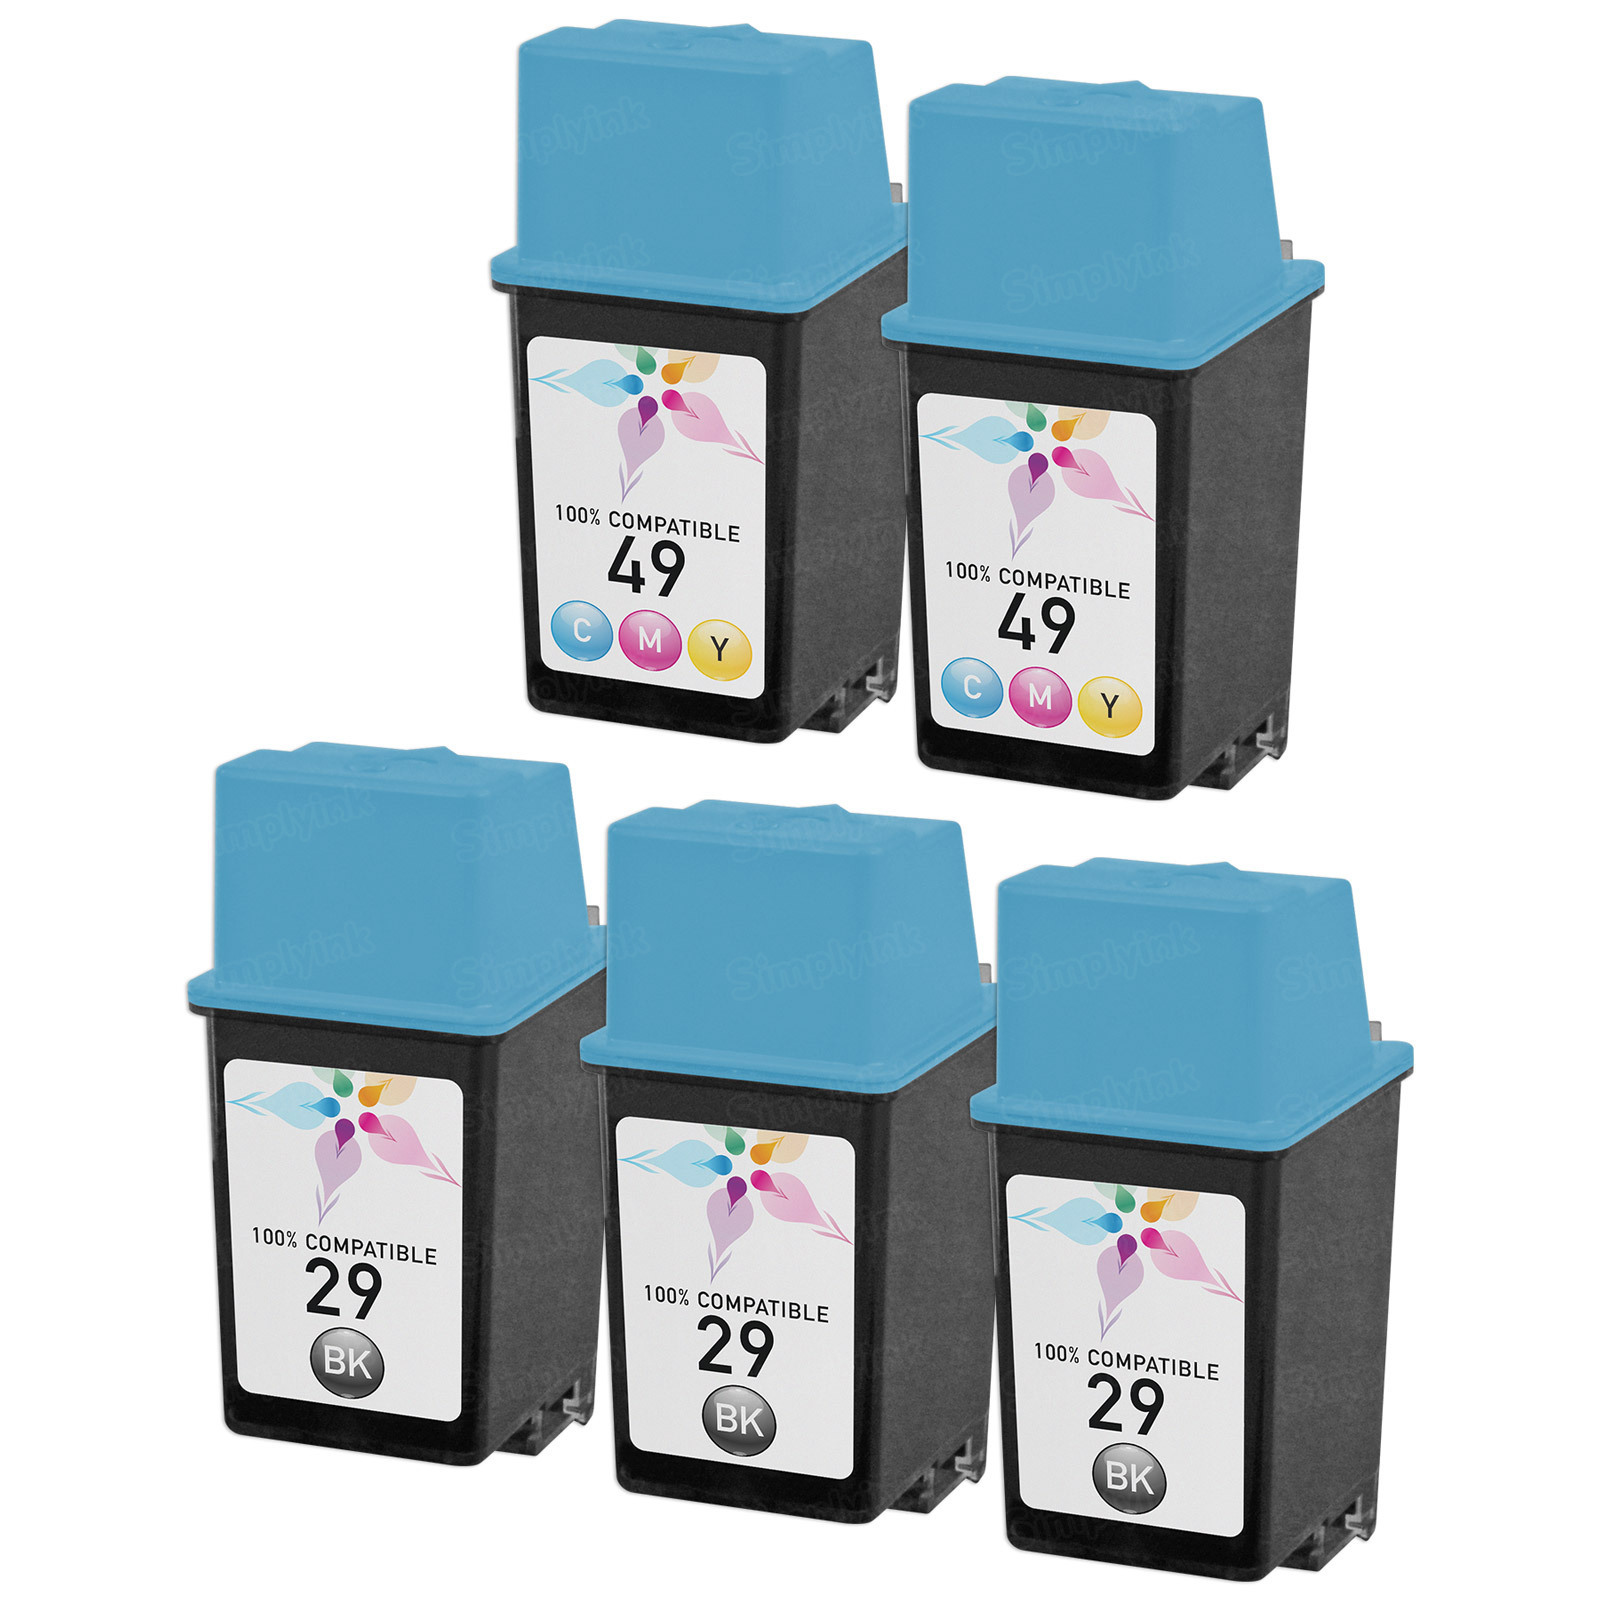 Remanufactured Bulk Set of 5 Ink Cartridges to Replace HP 29 & HP 49 (3 BK, 2 CLR)